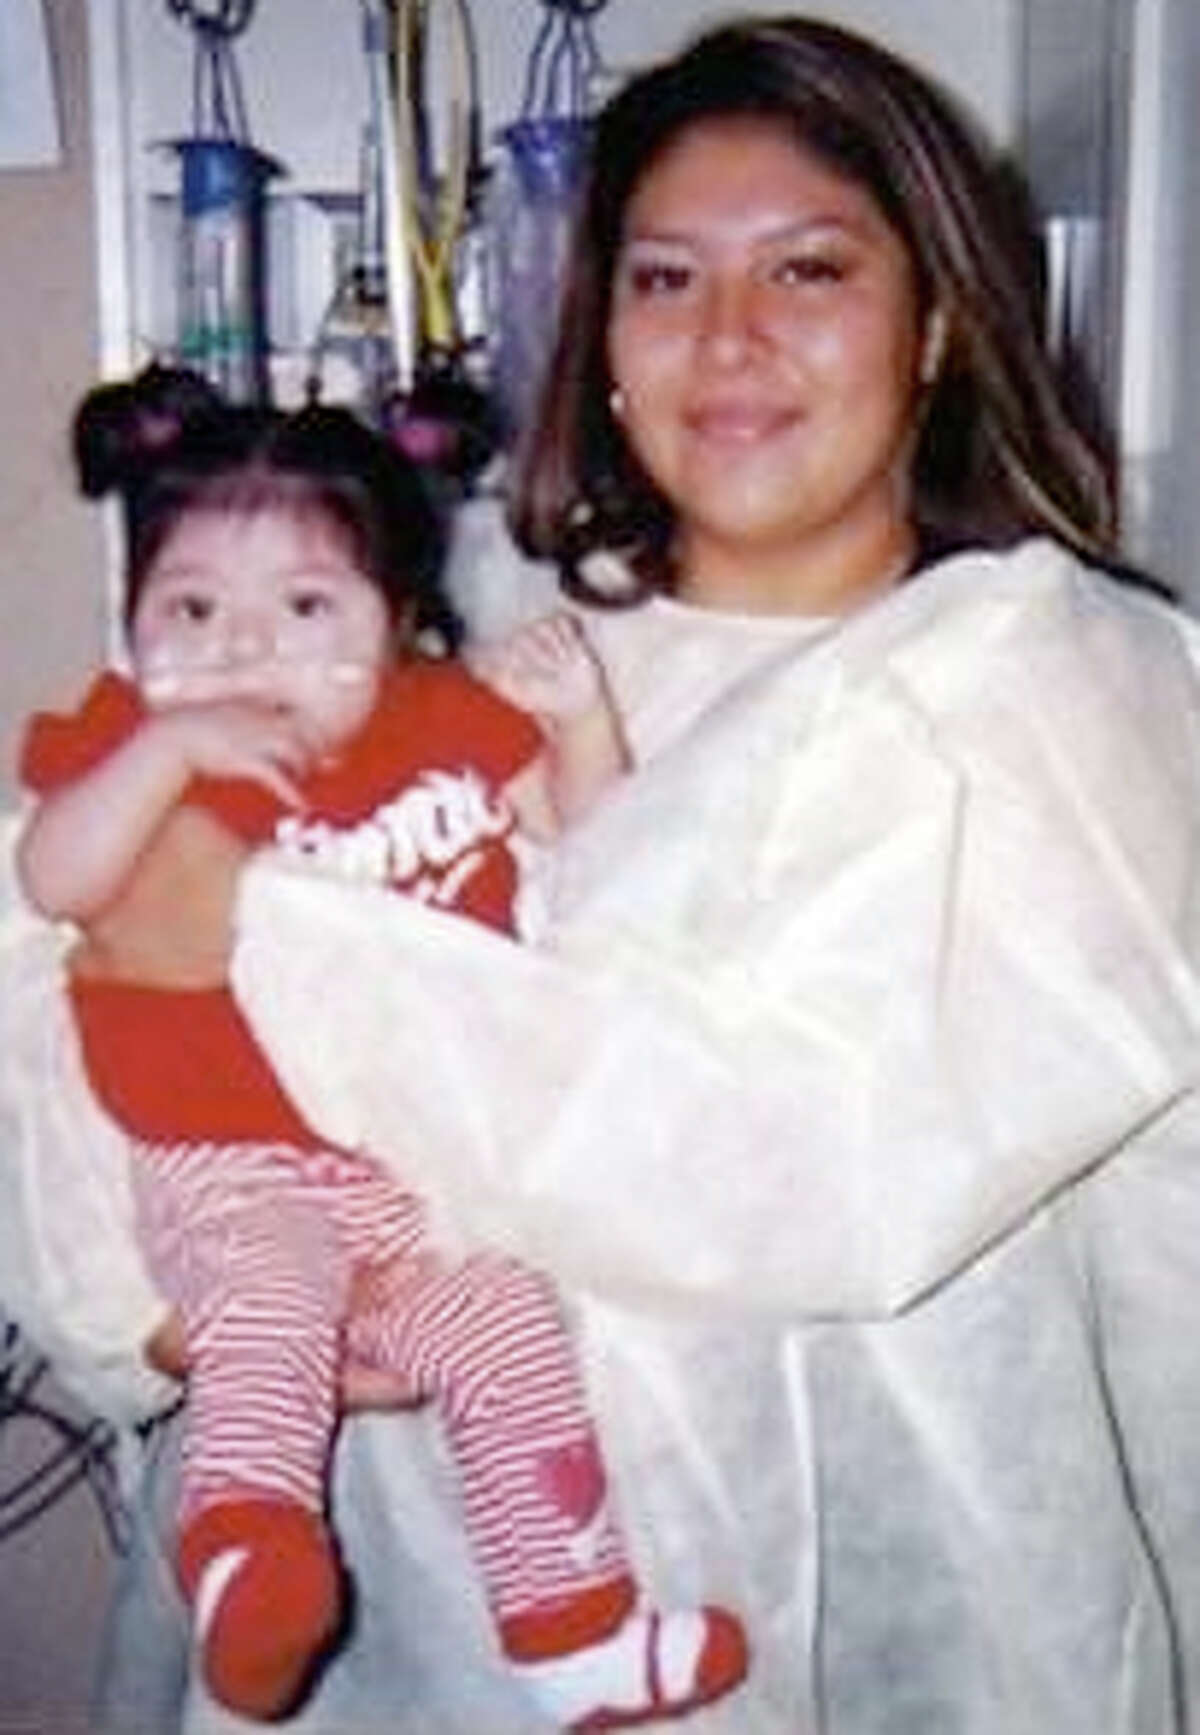 Julia Martinez was selected by CPS to receive a higher level of care for her heart defect after an inquiry. That never happened.